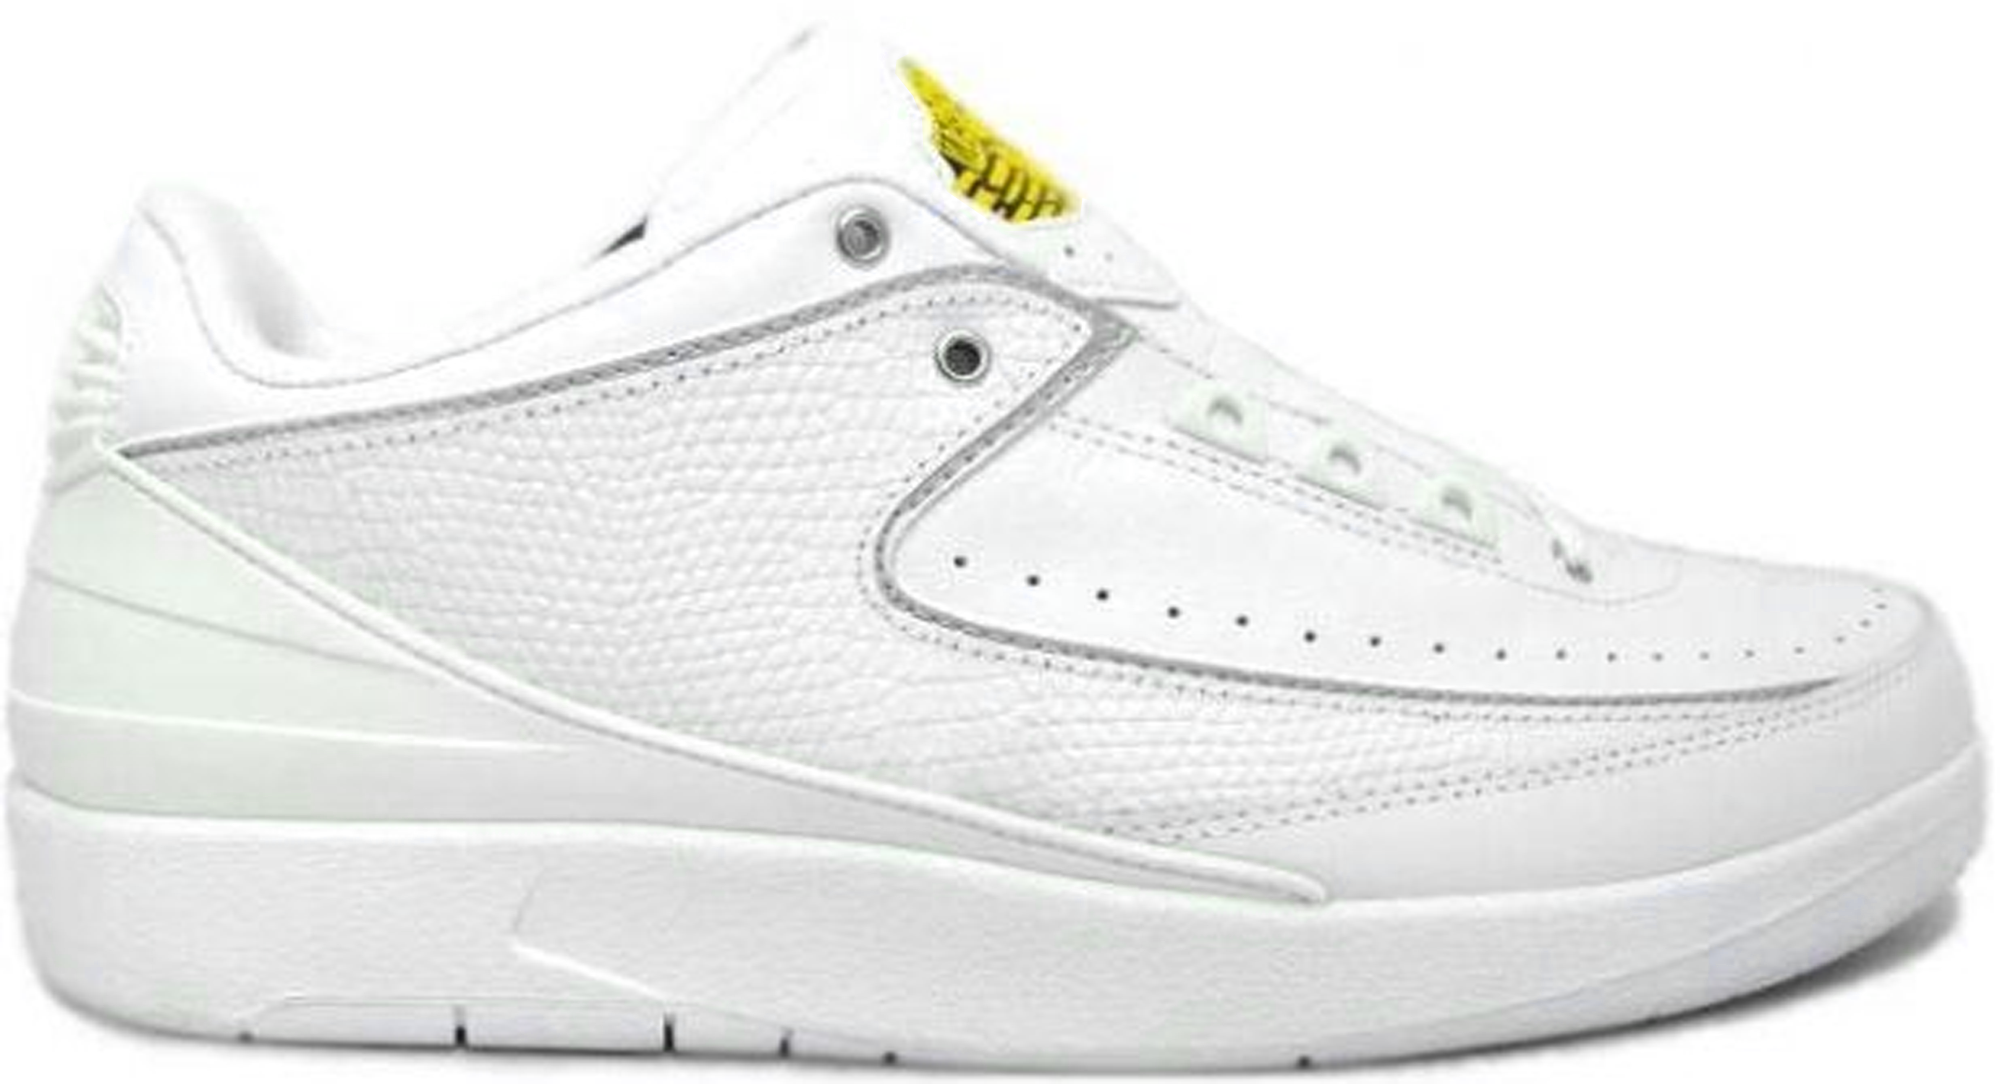 Jordan 2 Retro Low White Varsity Maize